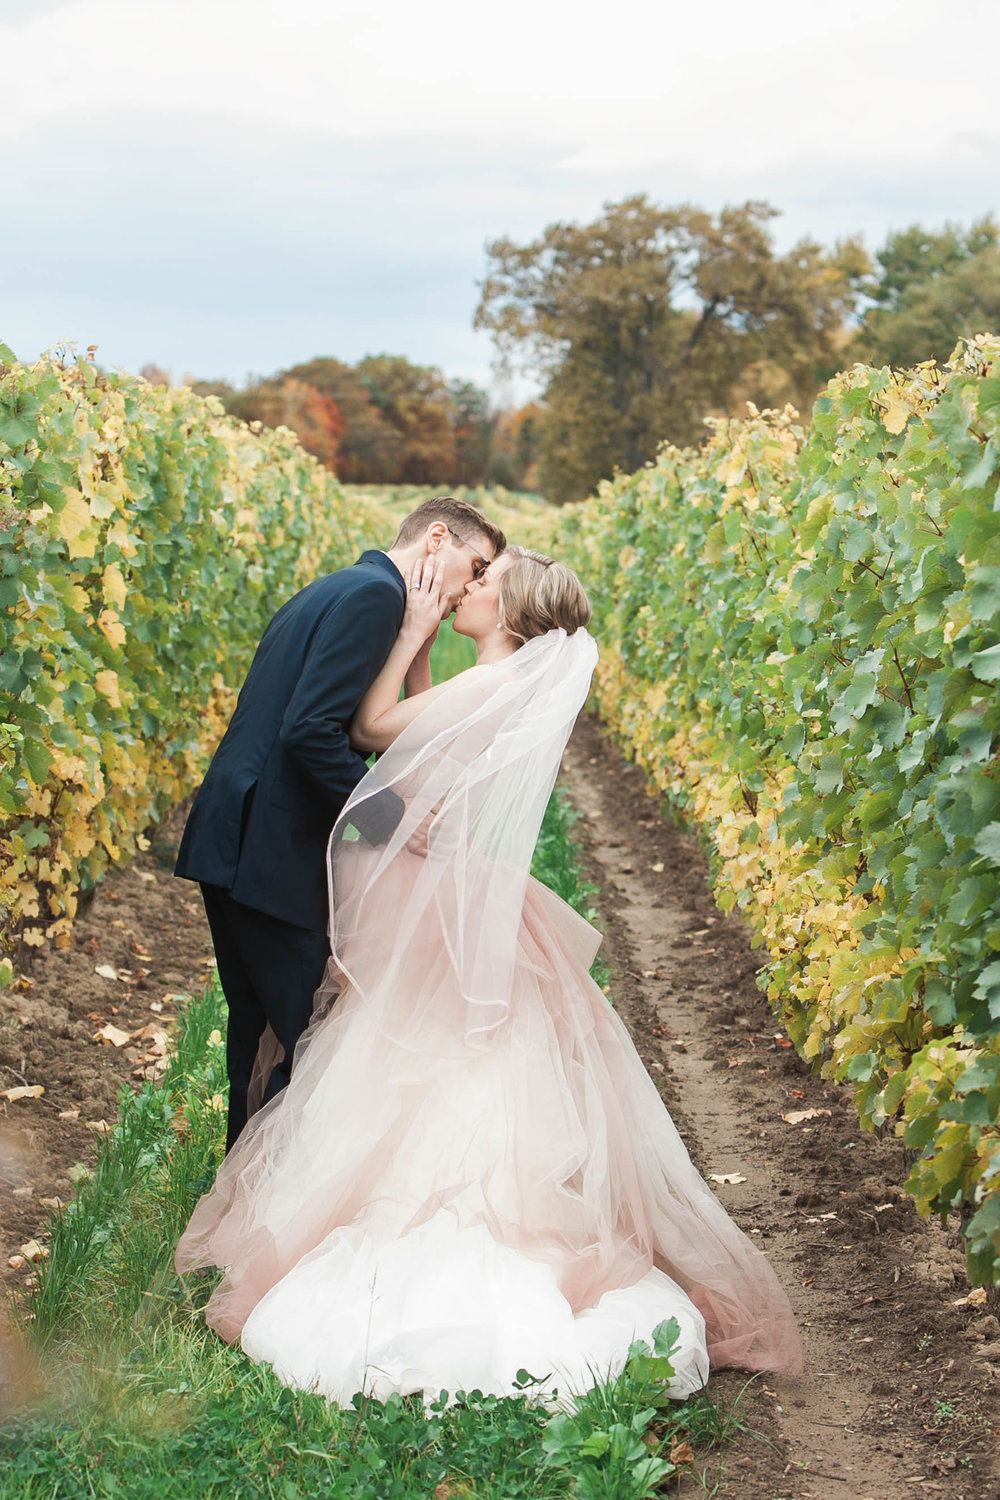 Bride and groom photos at Chateau des Charmes winery